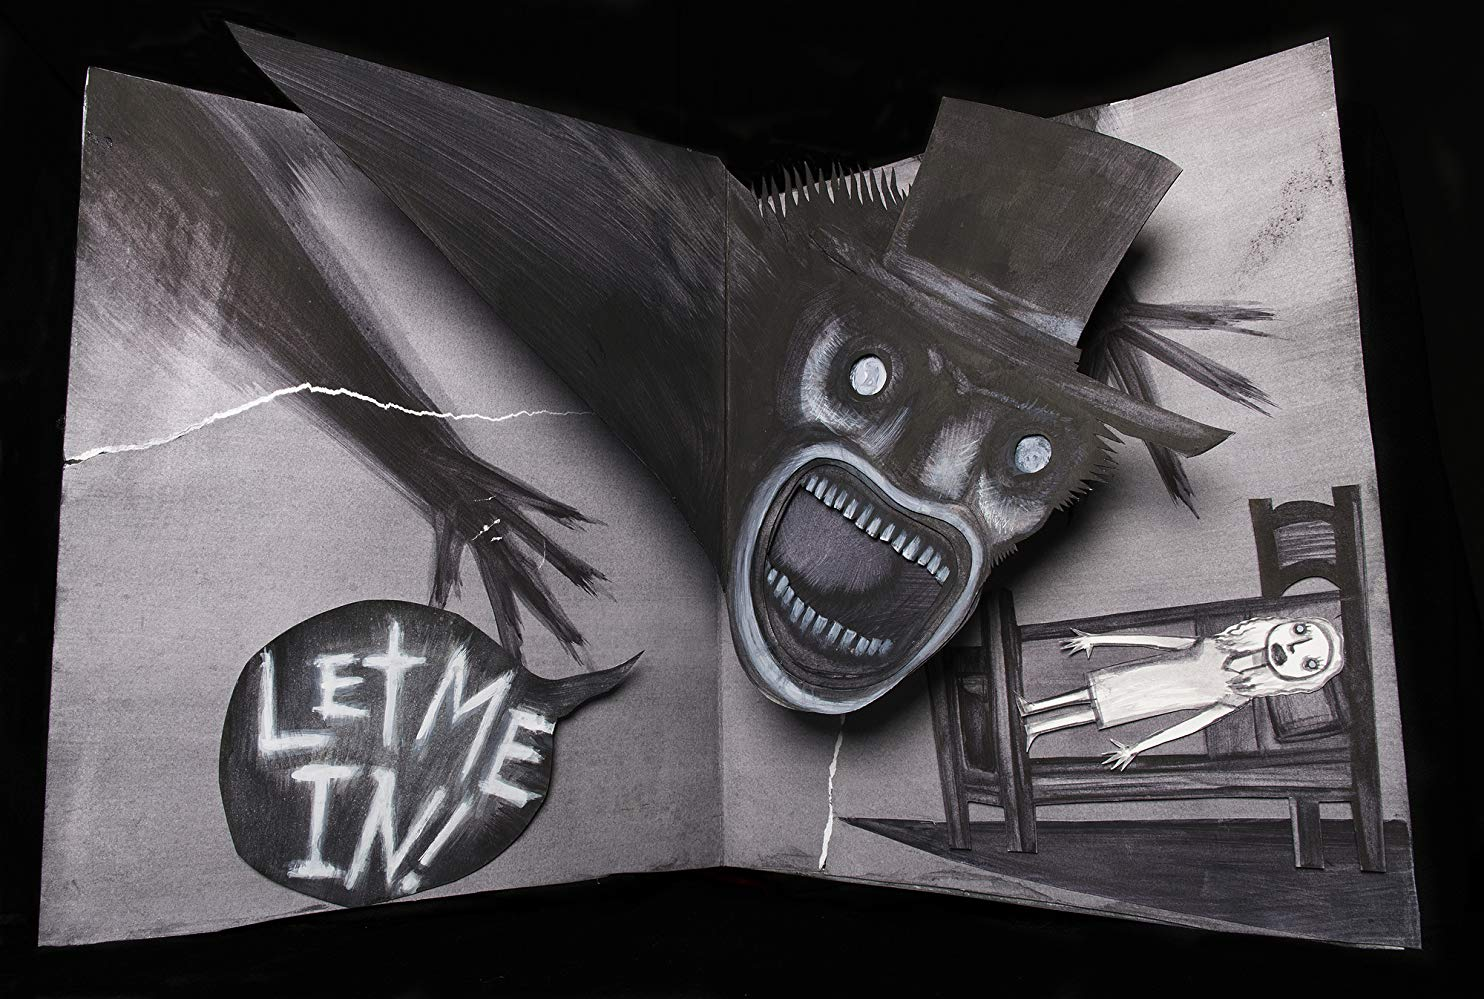 The Babadook emerges from a children's story in The Babadook (2014)